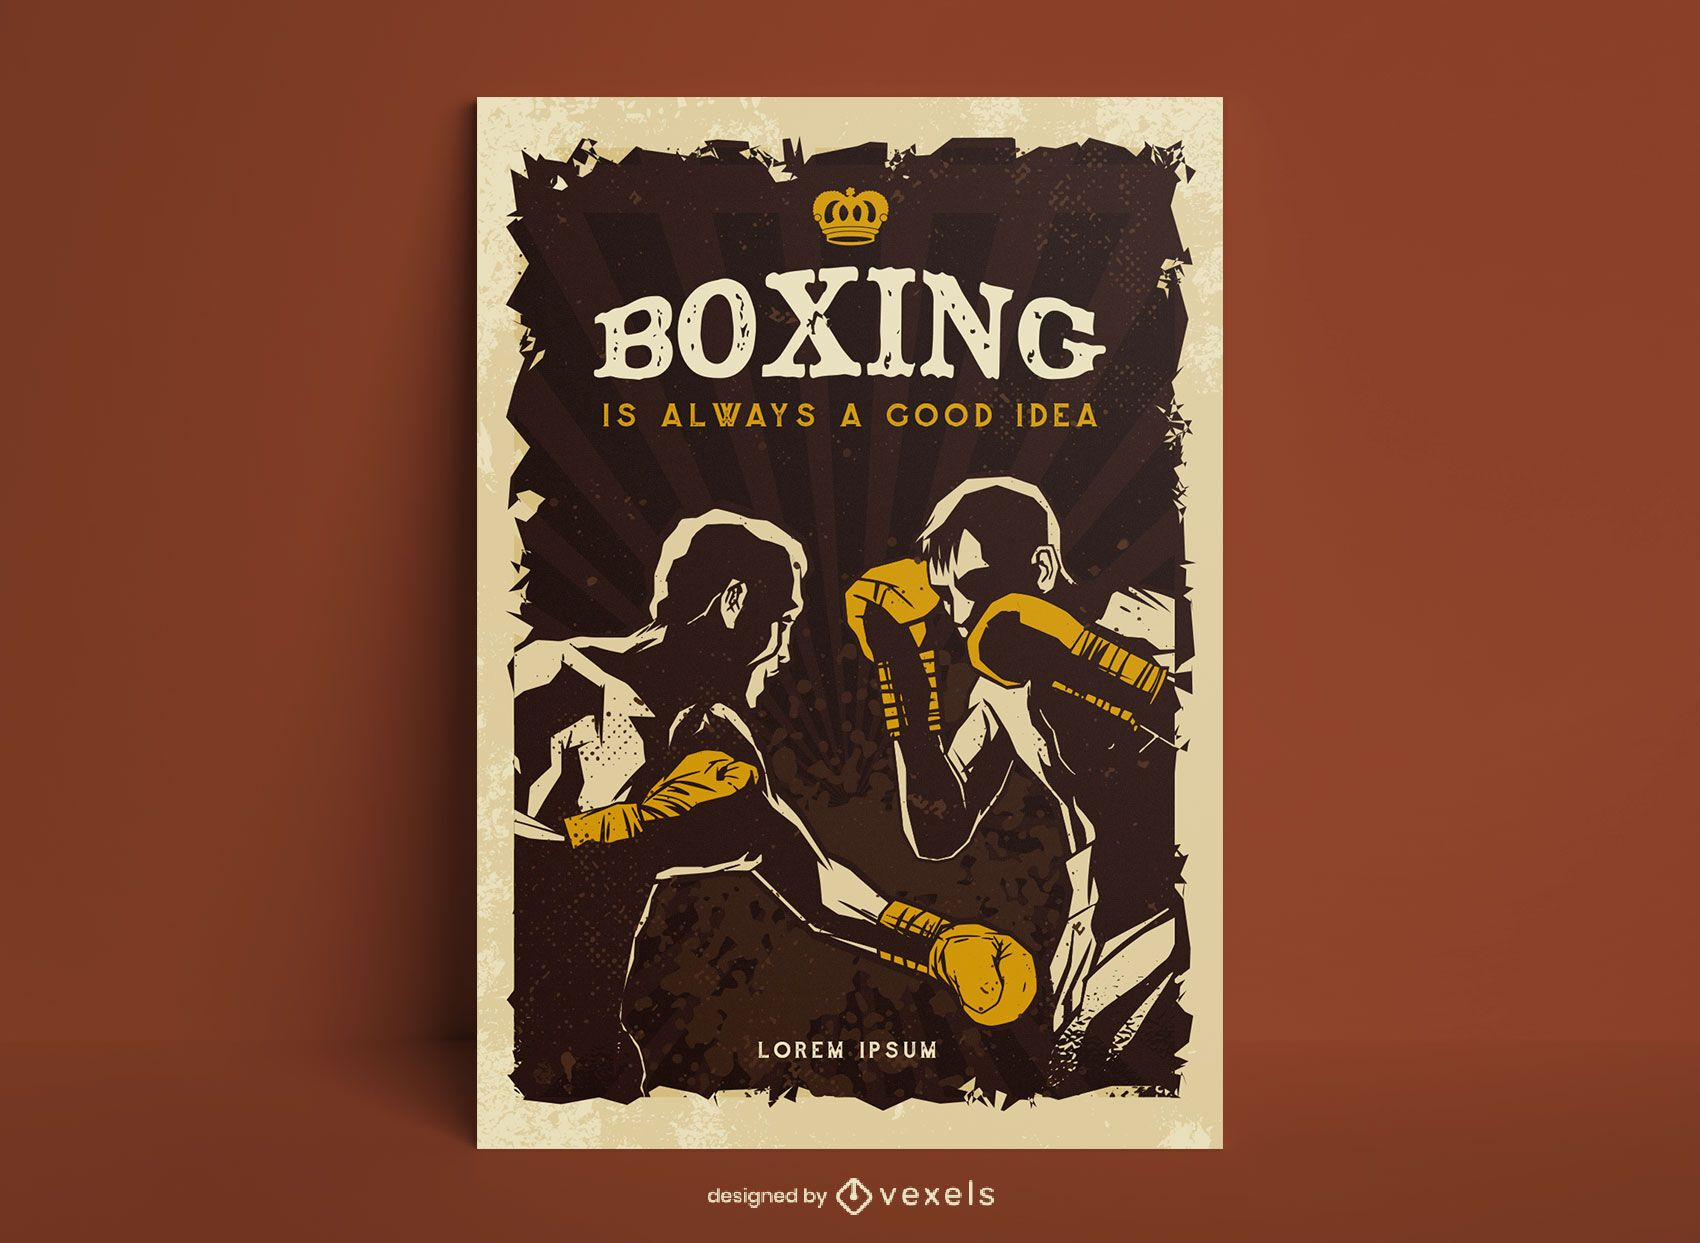 Vintage style boxing poster design